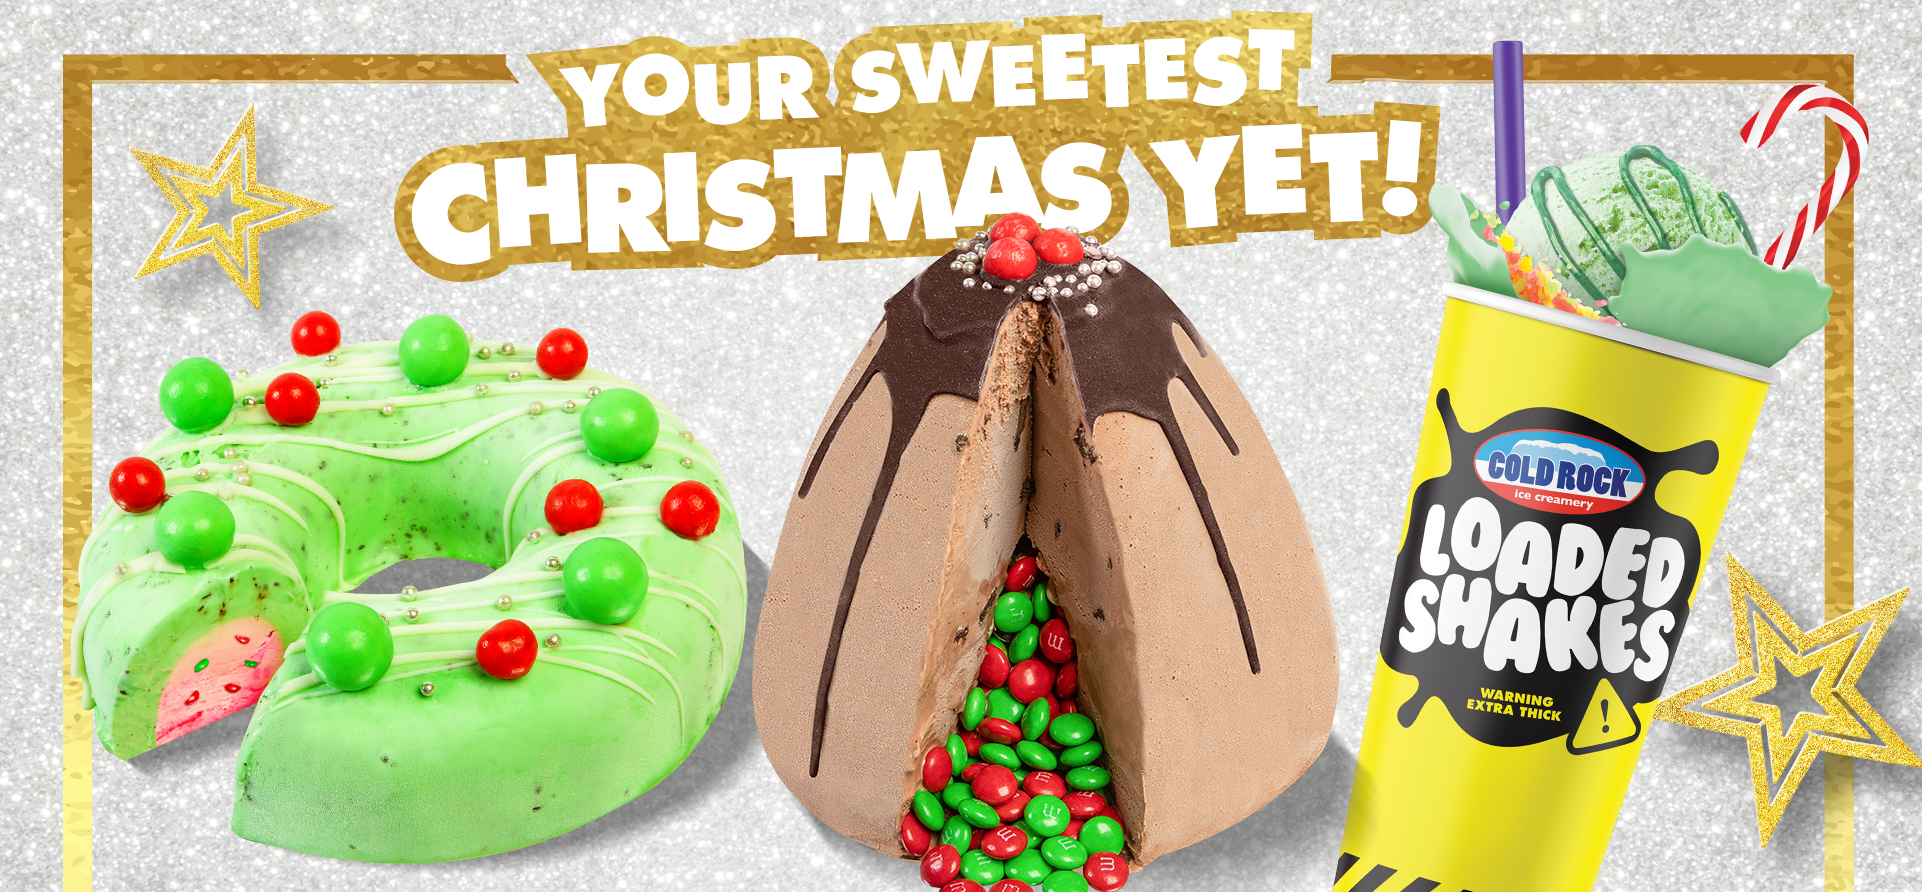 Your Sweetest Christmas Yet!